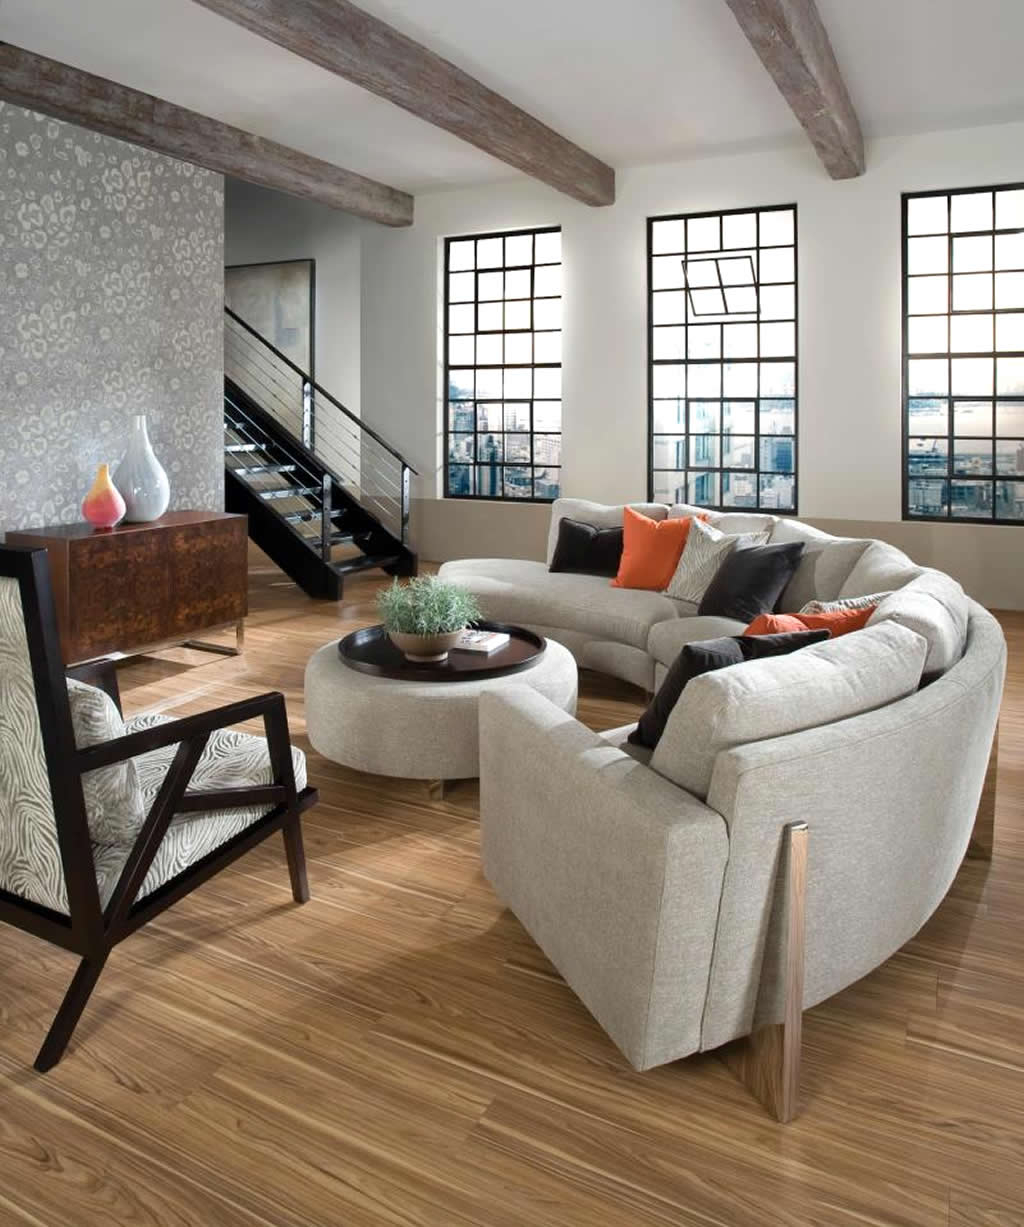 How To Arrange Living Room With Sectional Couch